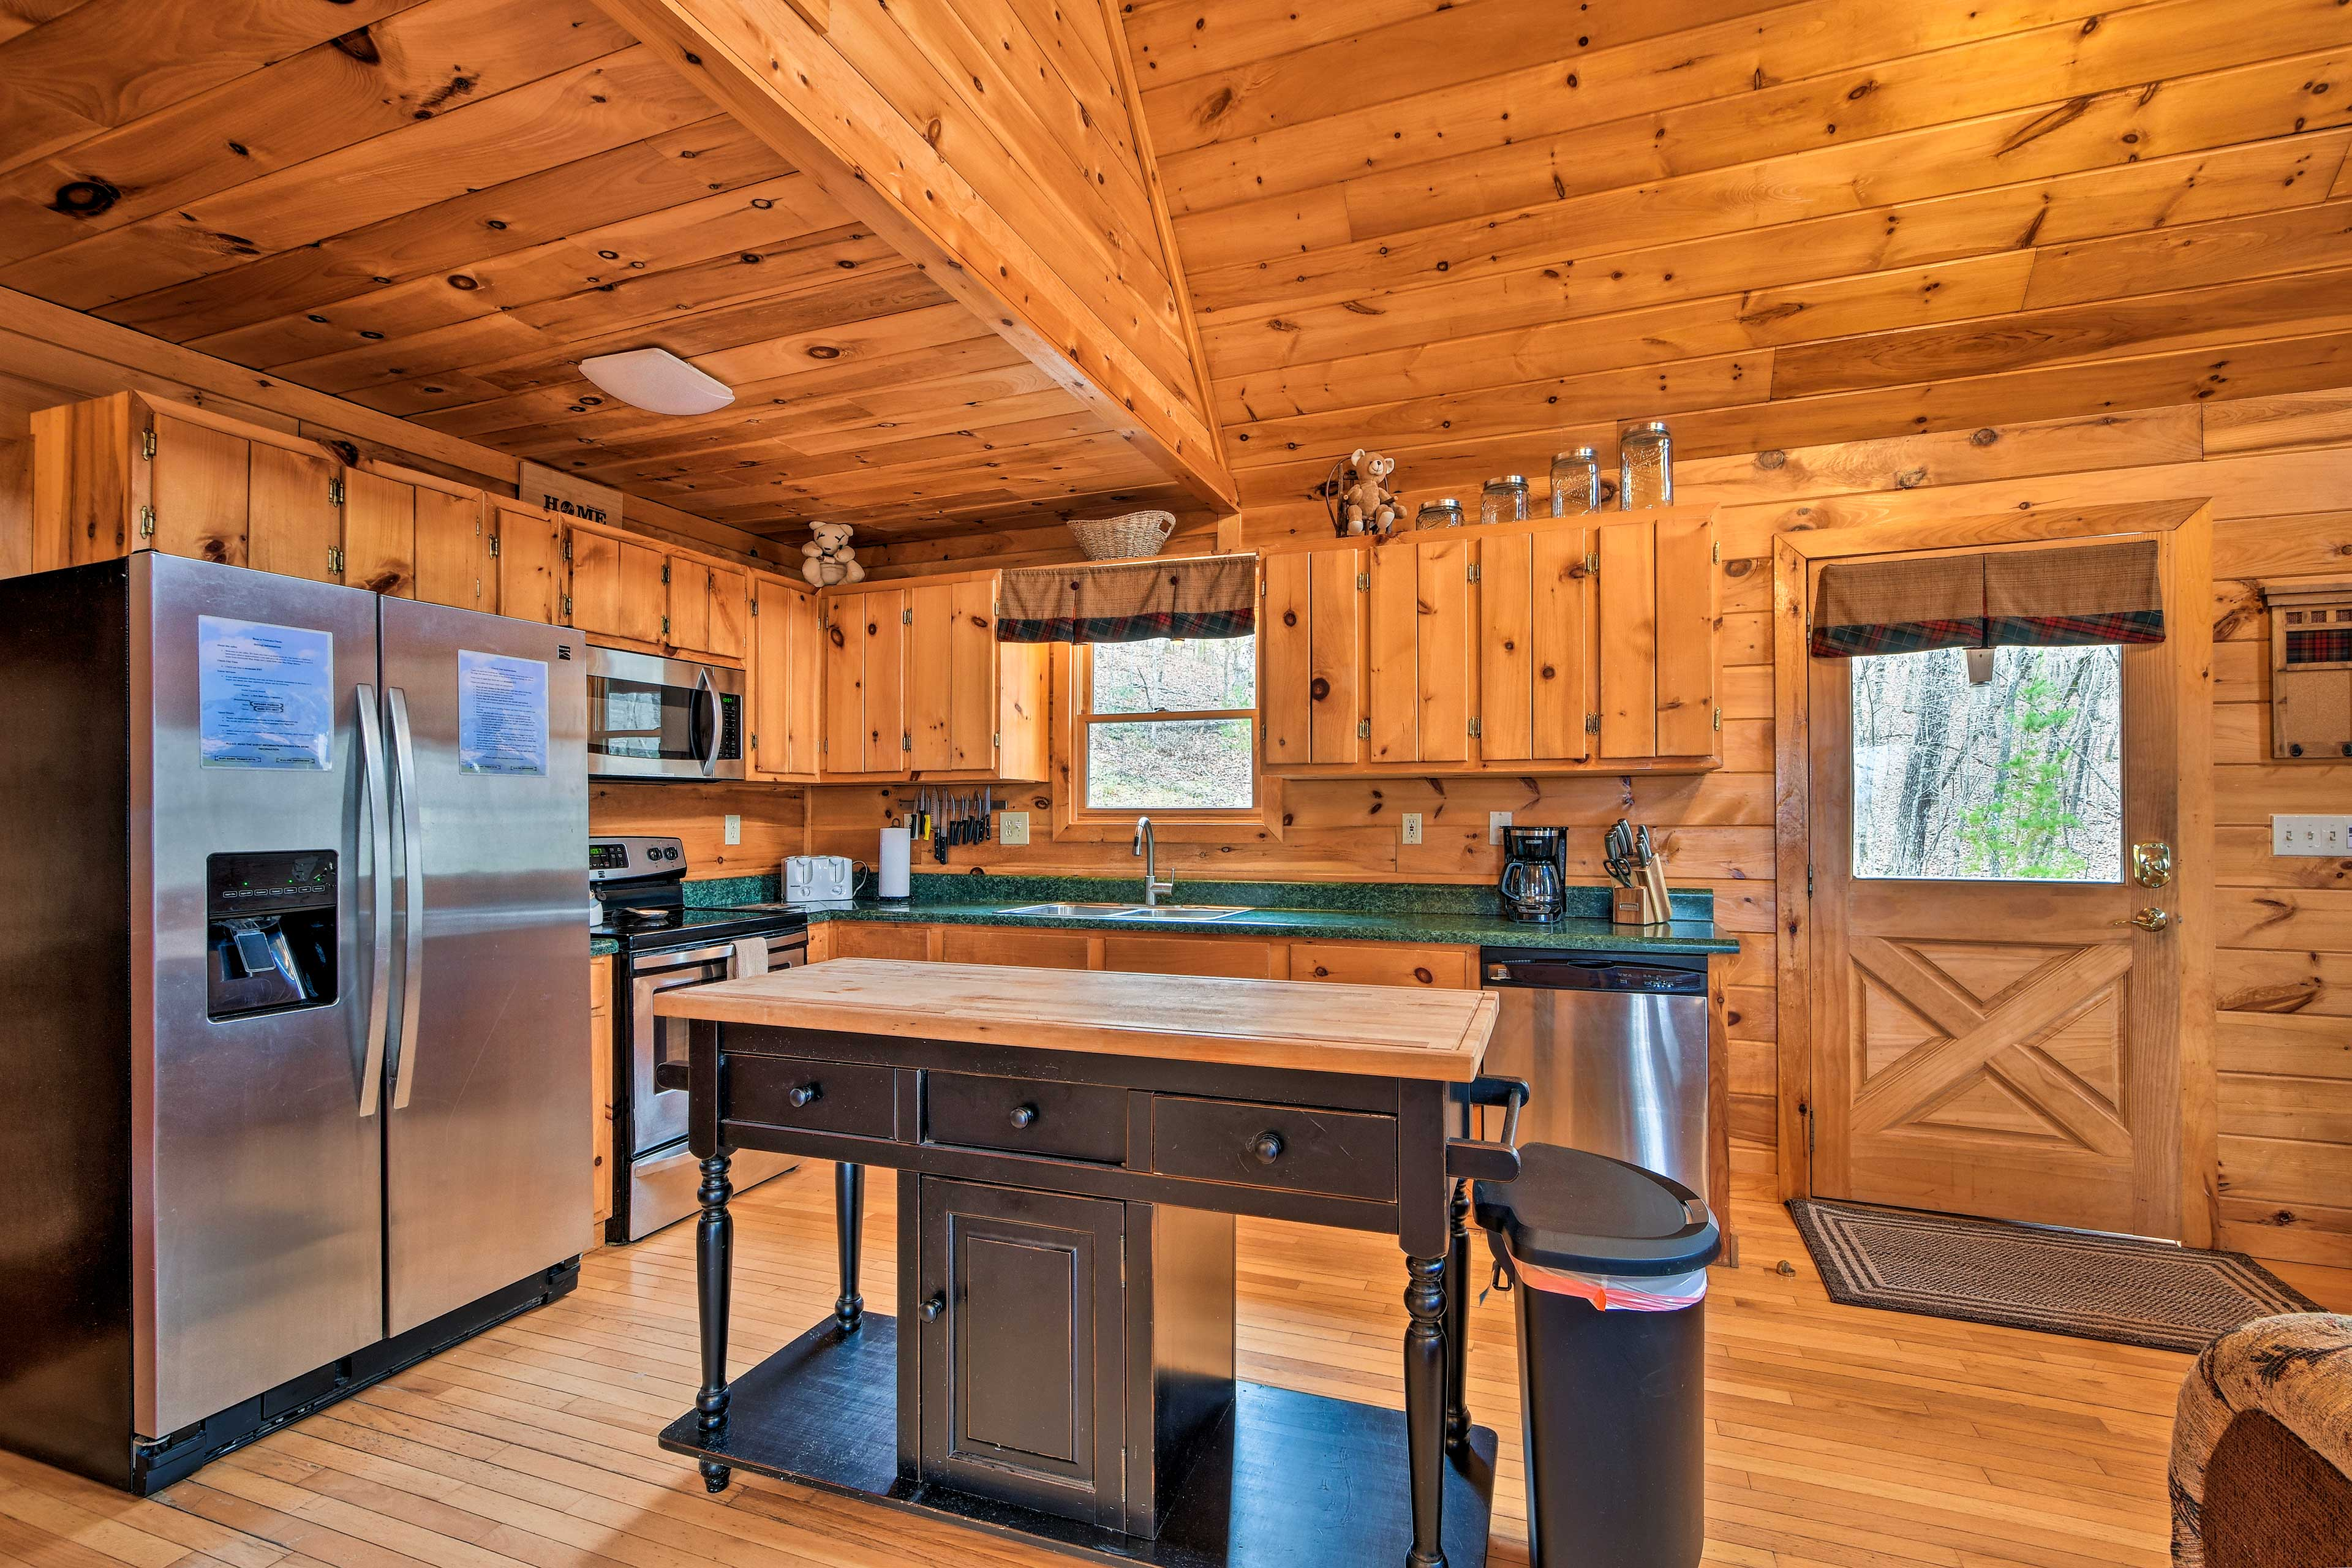 Stainless steel appliances and a kitchen island complete the space.